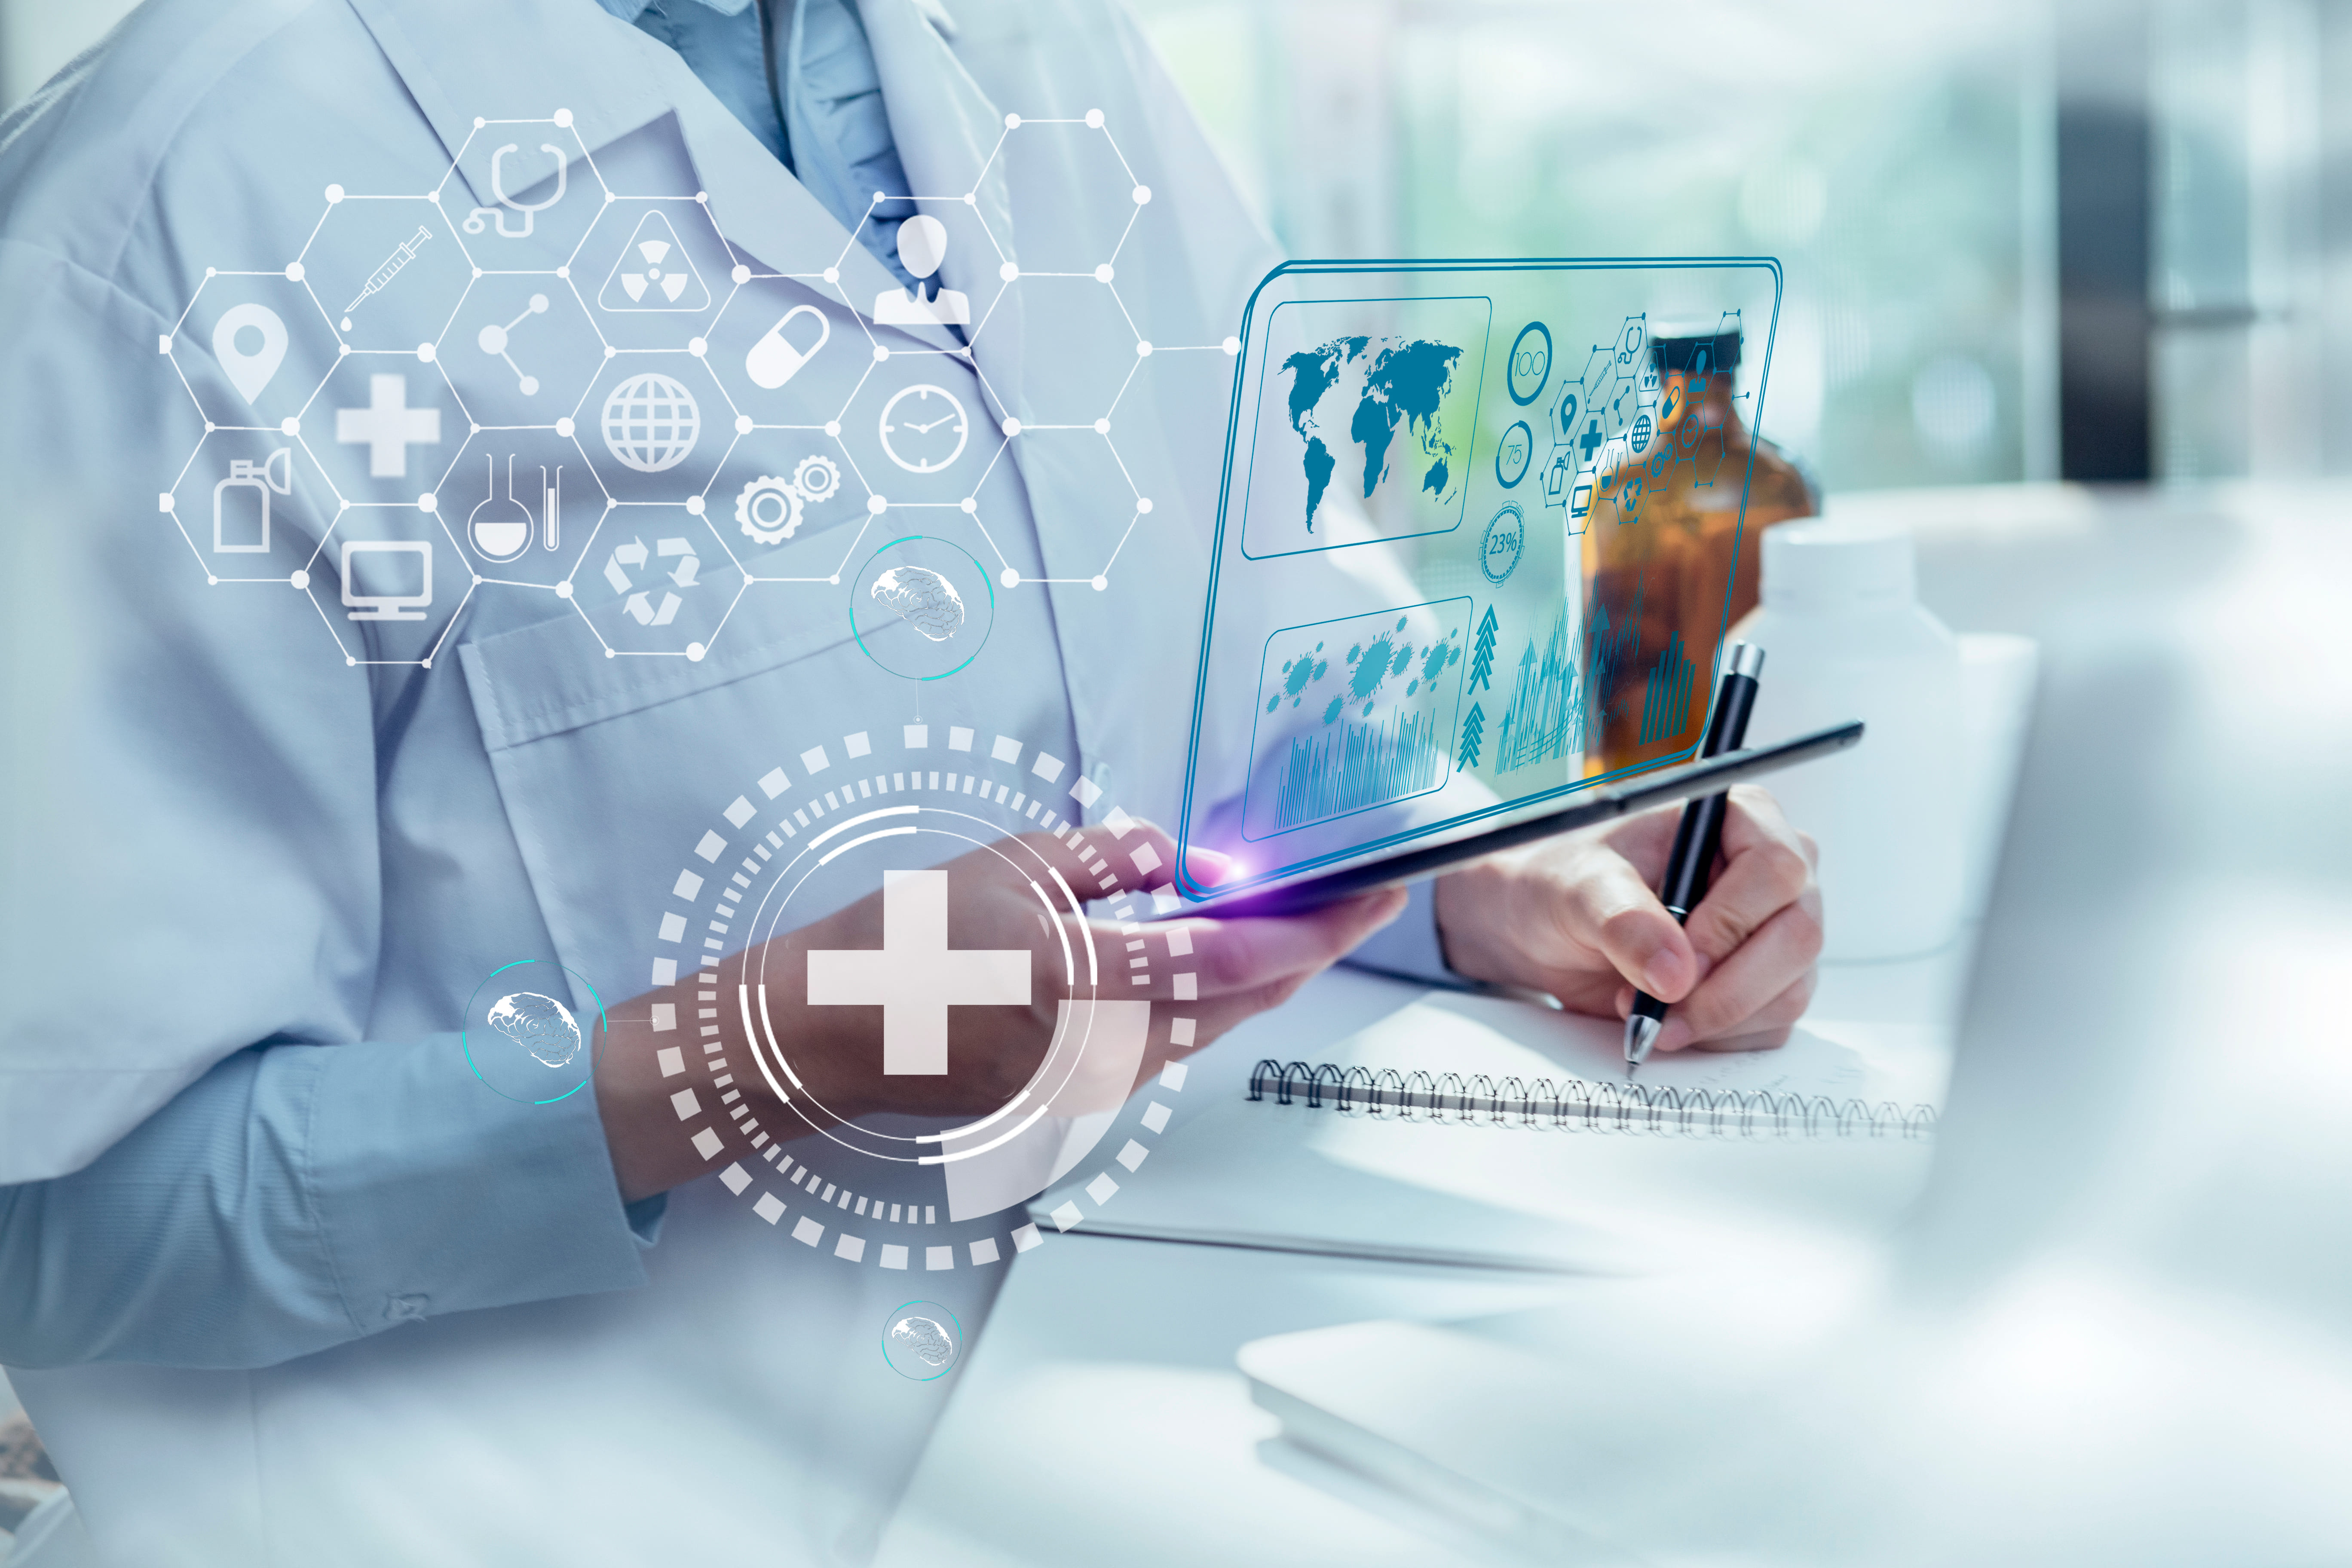 vection augmented reality solutions for medical training